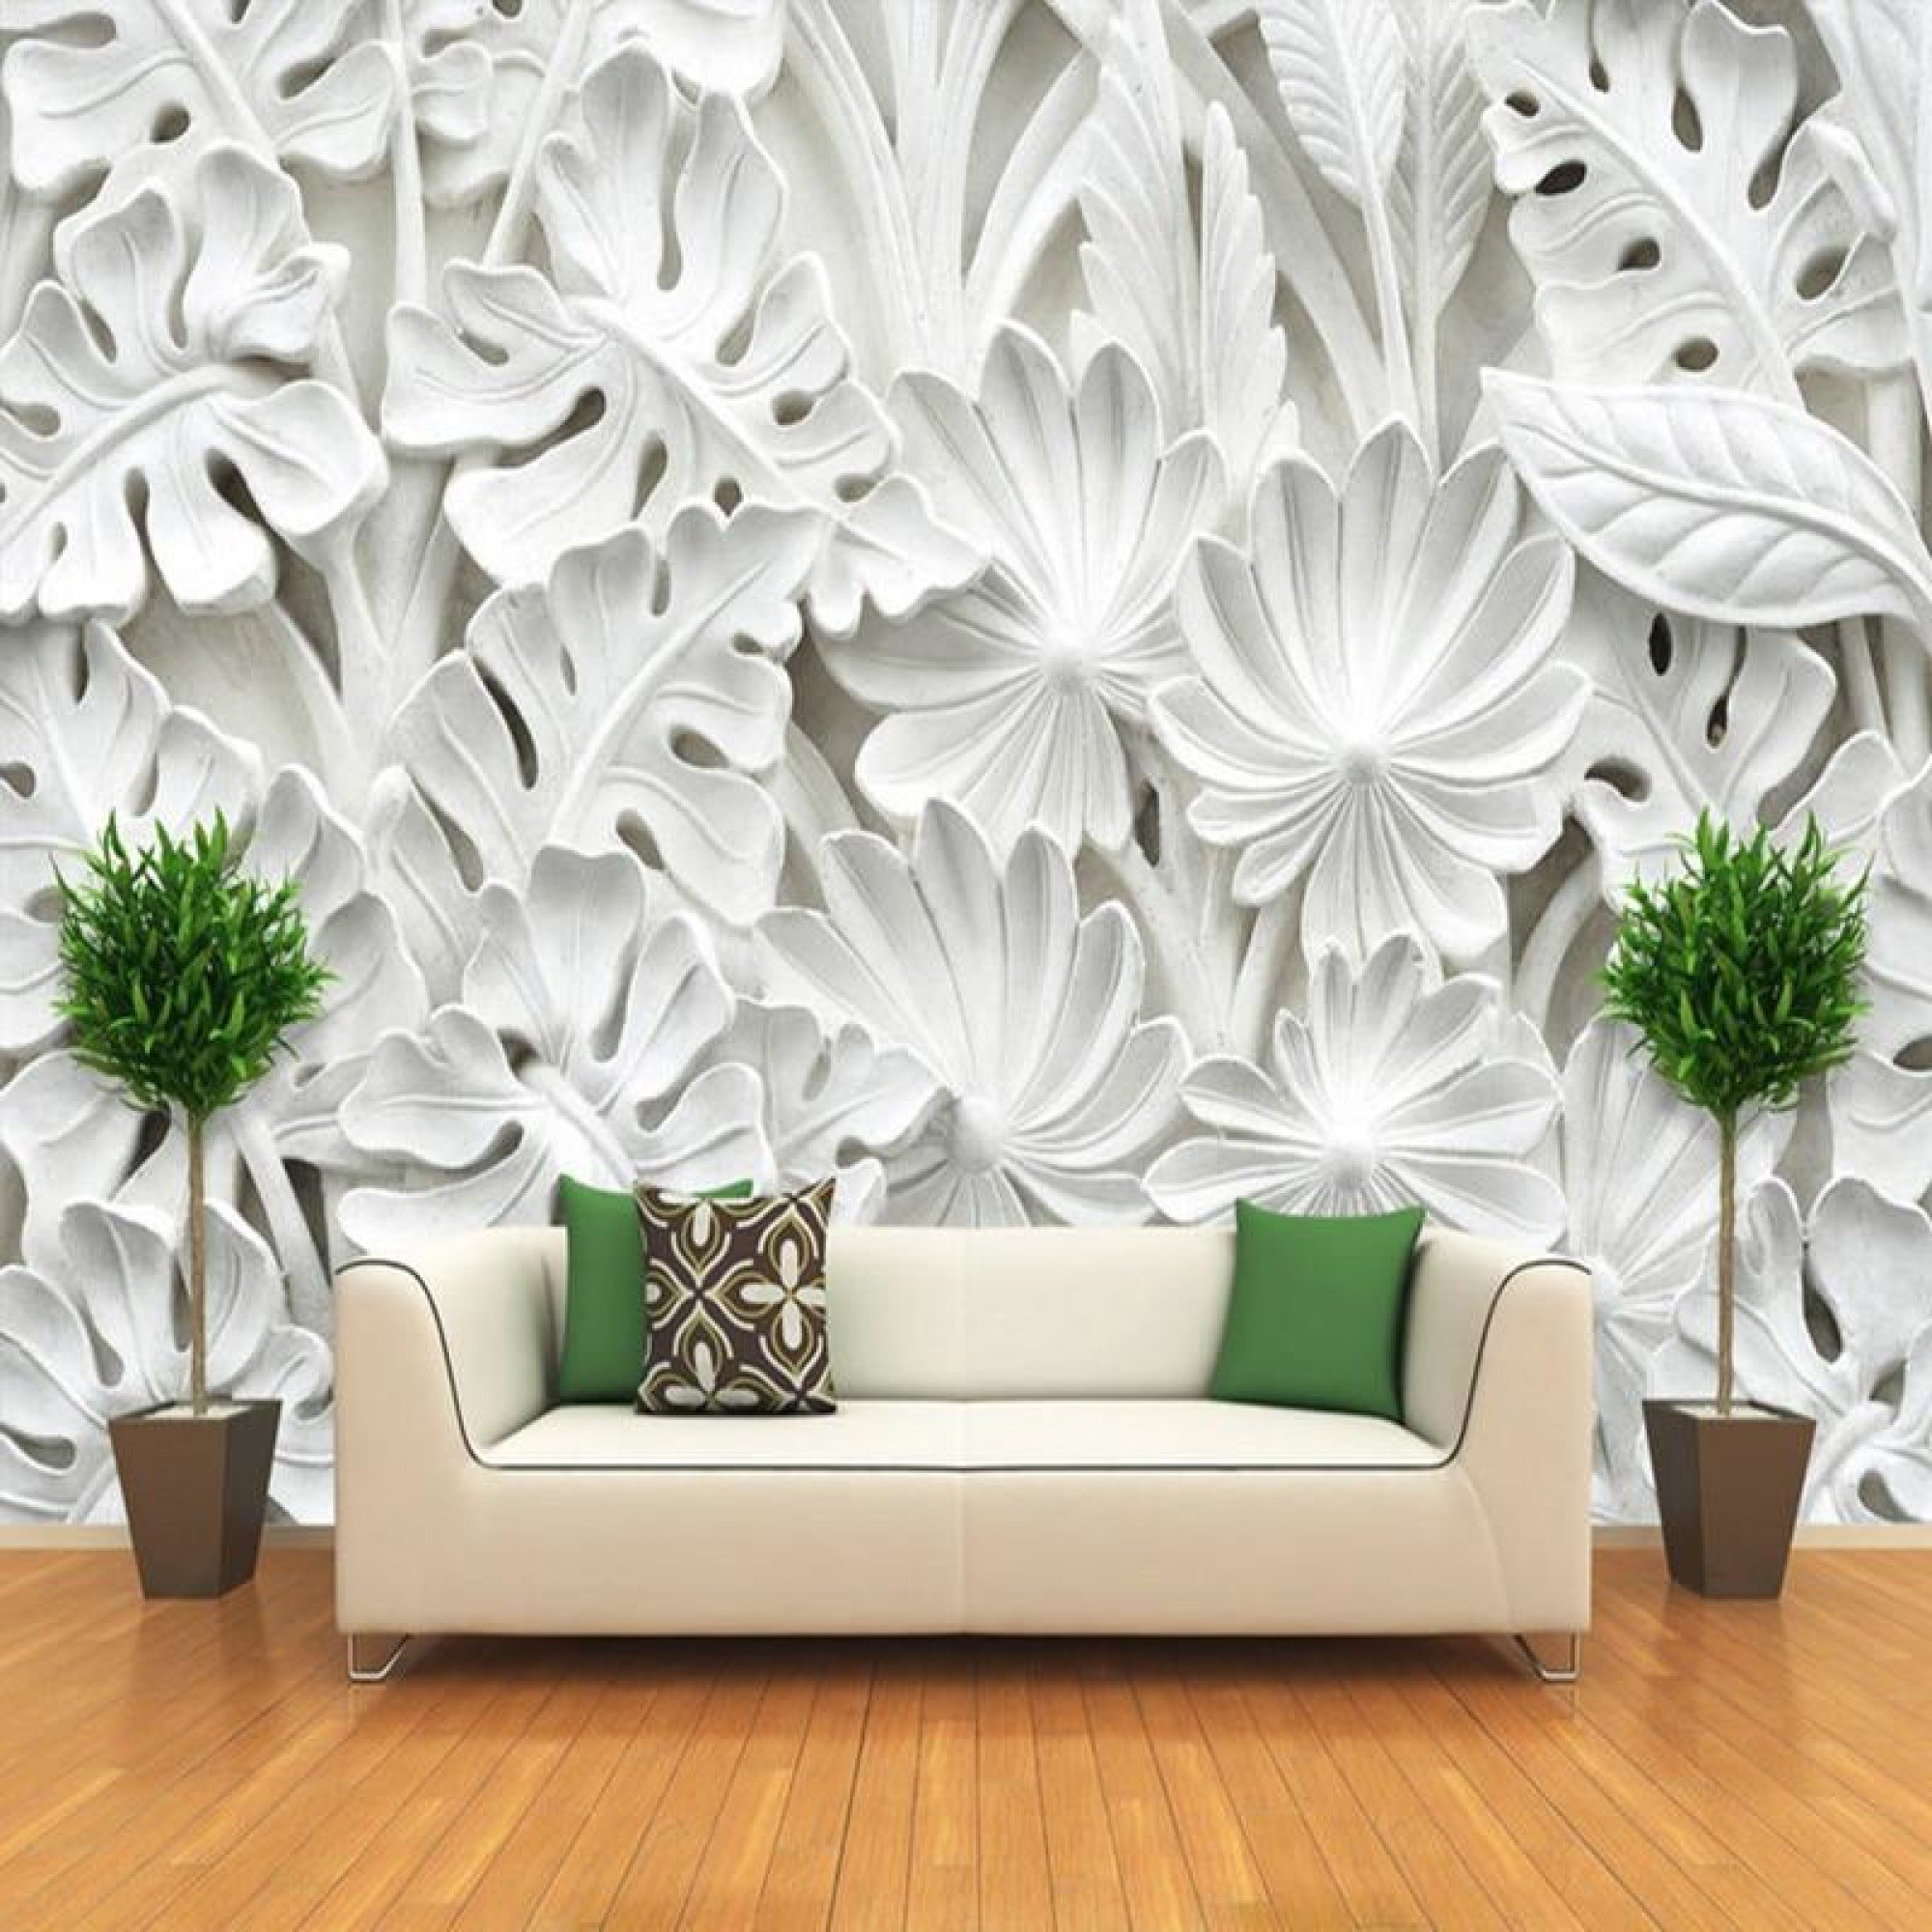 3d Embossed Leaf Abstract Art Textile Wallpapers In 2020 3d Wallpaper For Walls 3d Wallpaper Living Room Wall Wallpaper